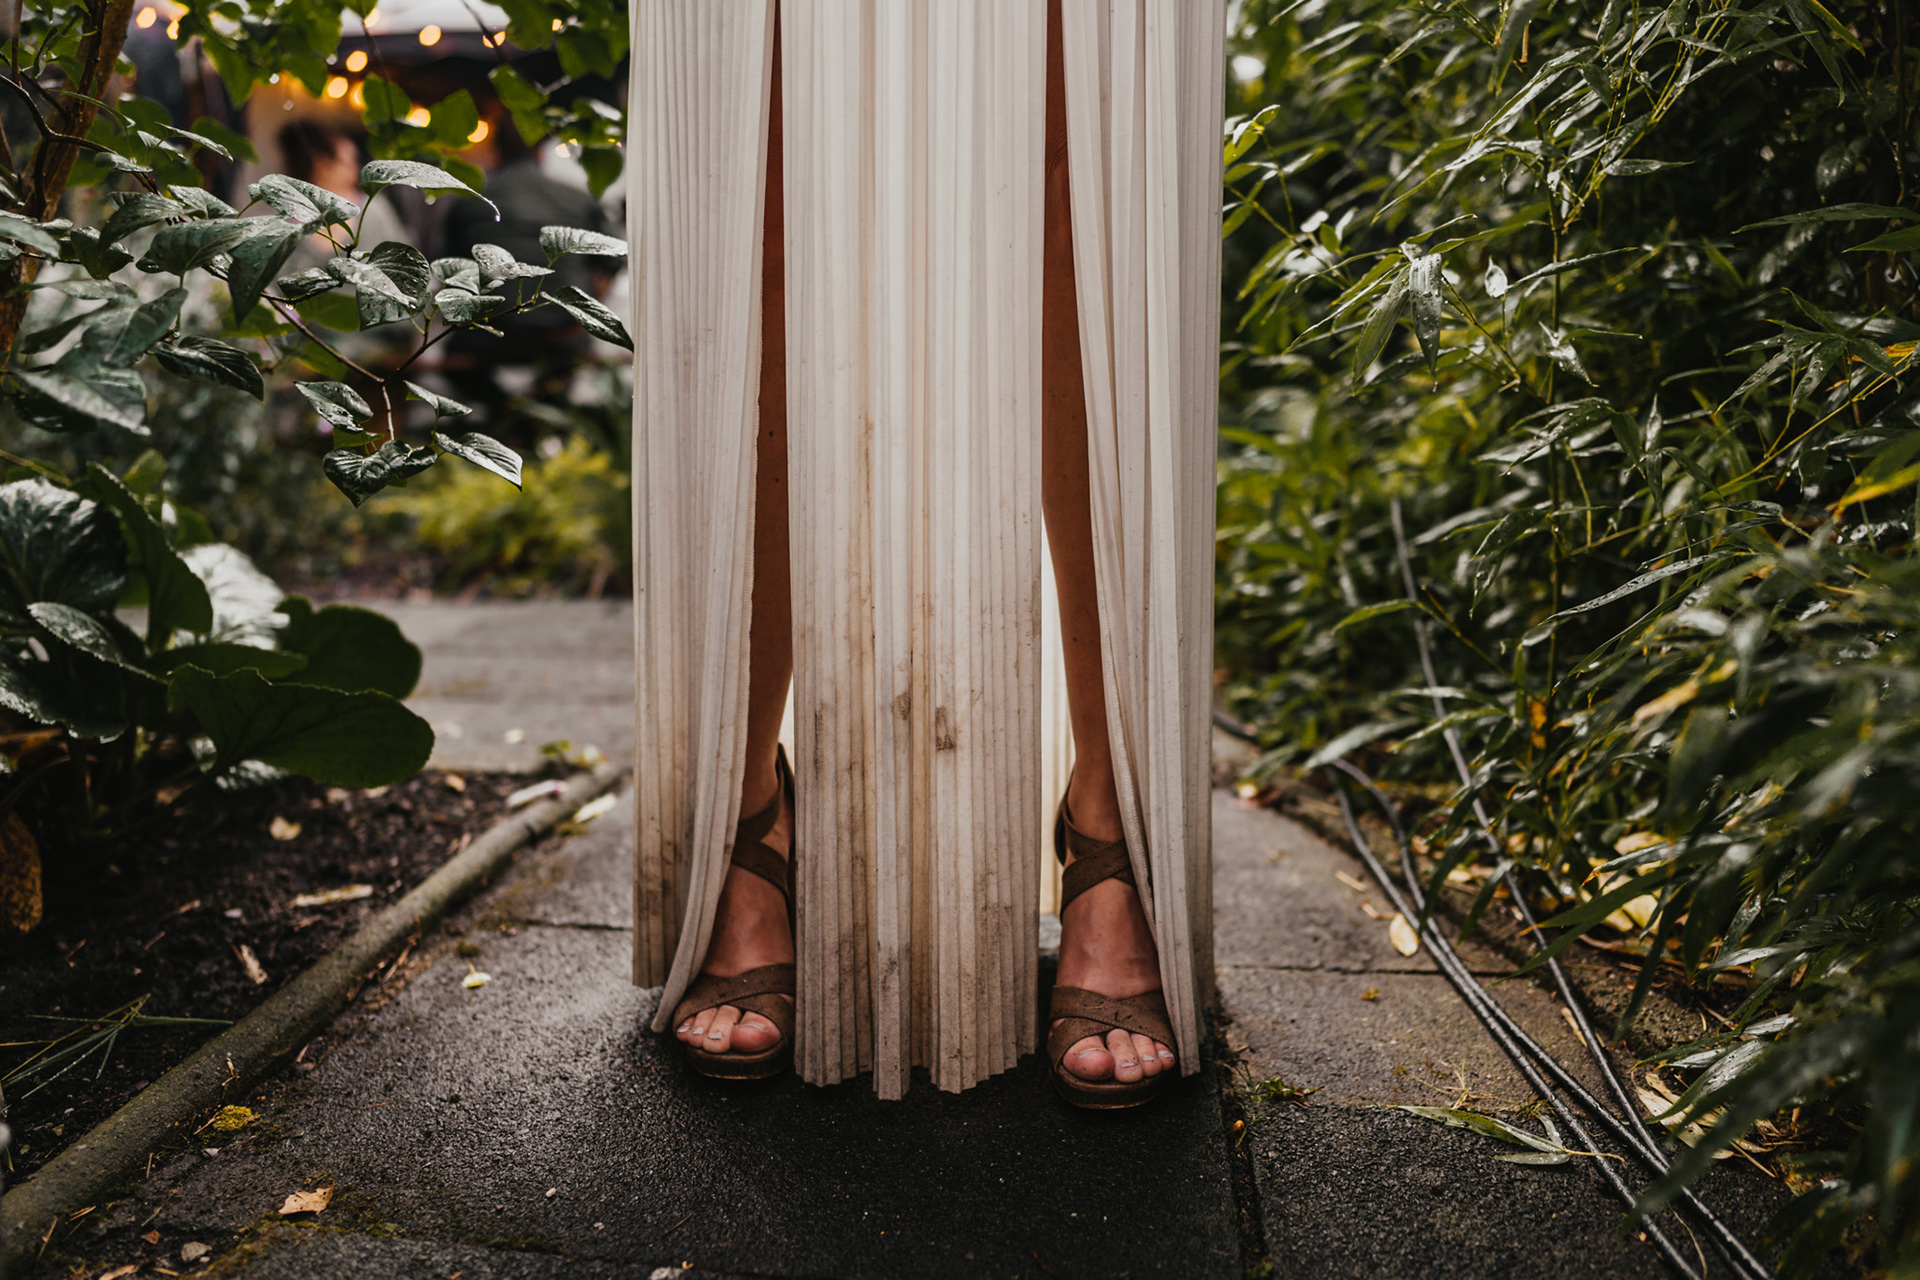 Garden Wedding Detail Image - Germany | A  bit of mud cannot tarnish the glow of a bride